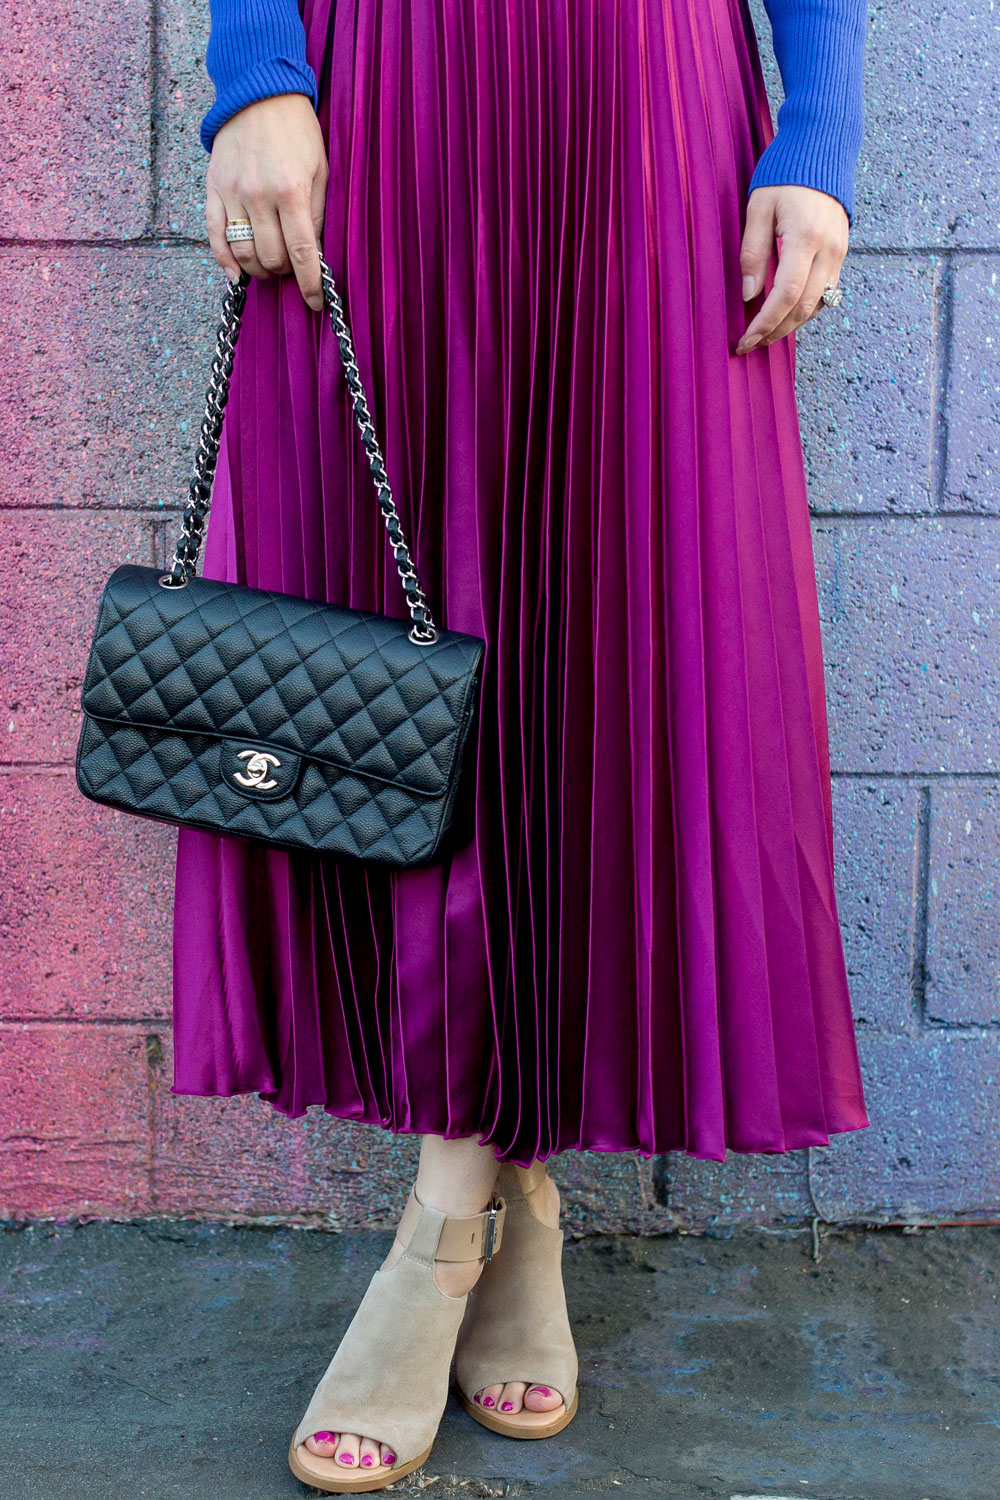 Jennifer Lake Style Charade in an ASOS purple pleated midi skirt, cobalt blue sweater bodysuit and Chanel quilted flap bag at a dripping paint wall in Los Angeles